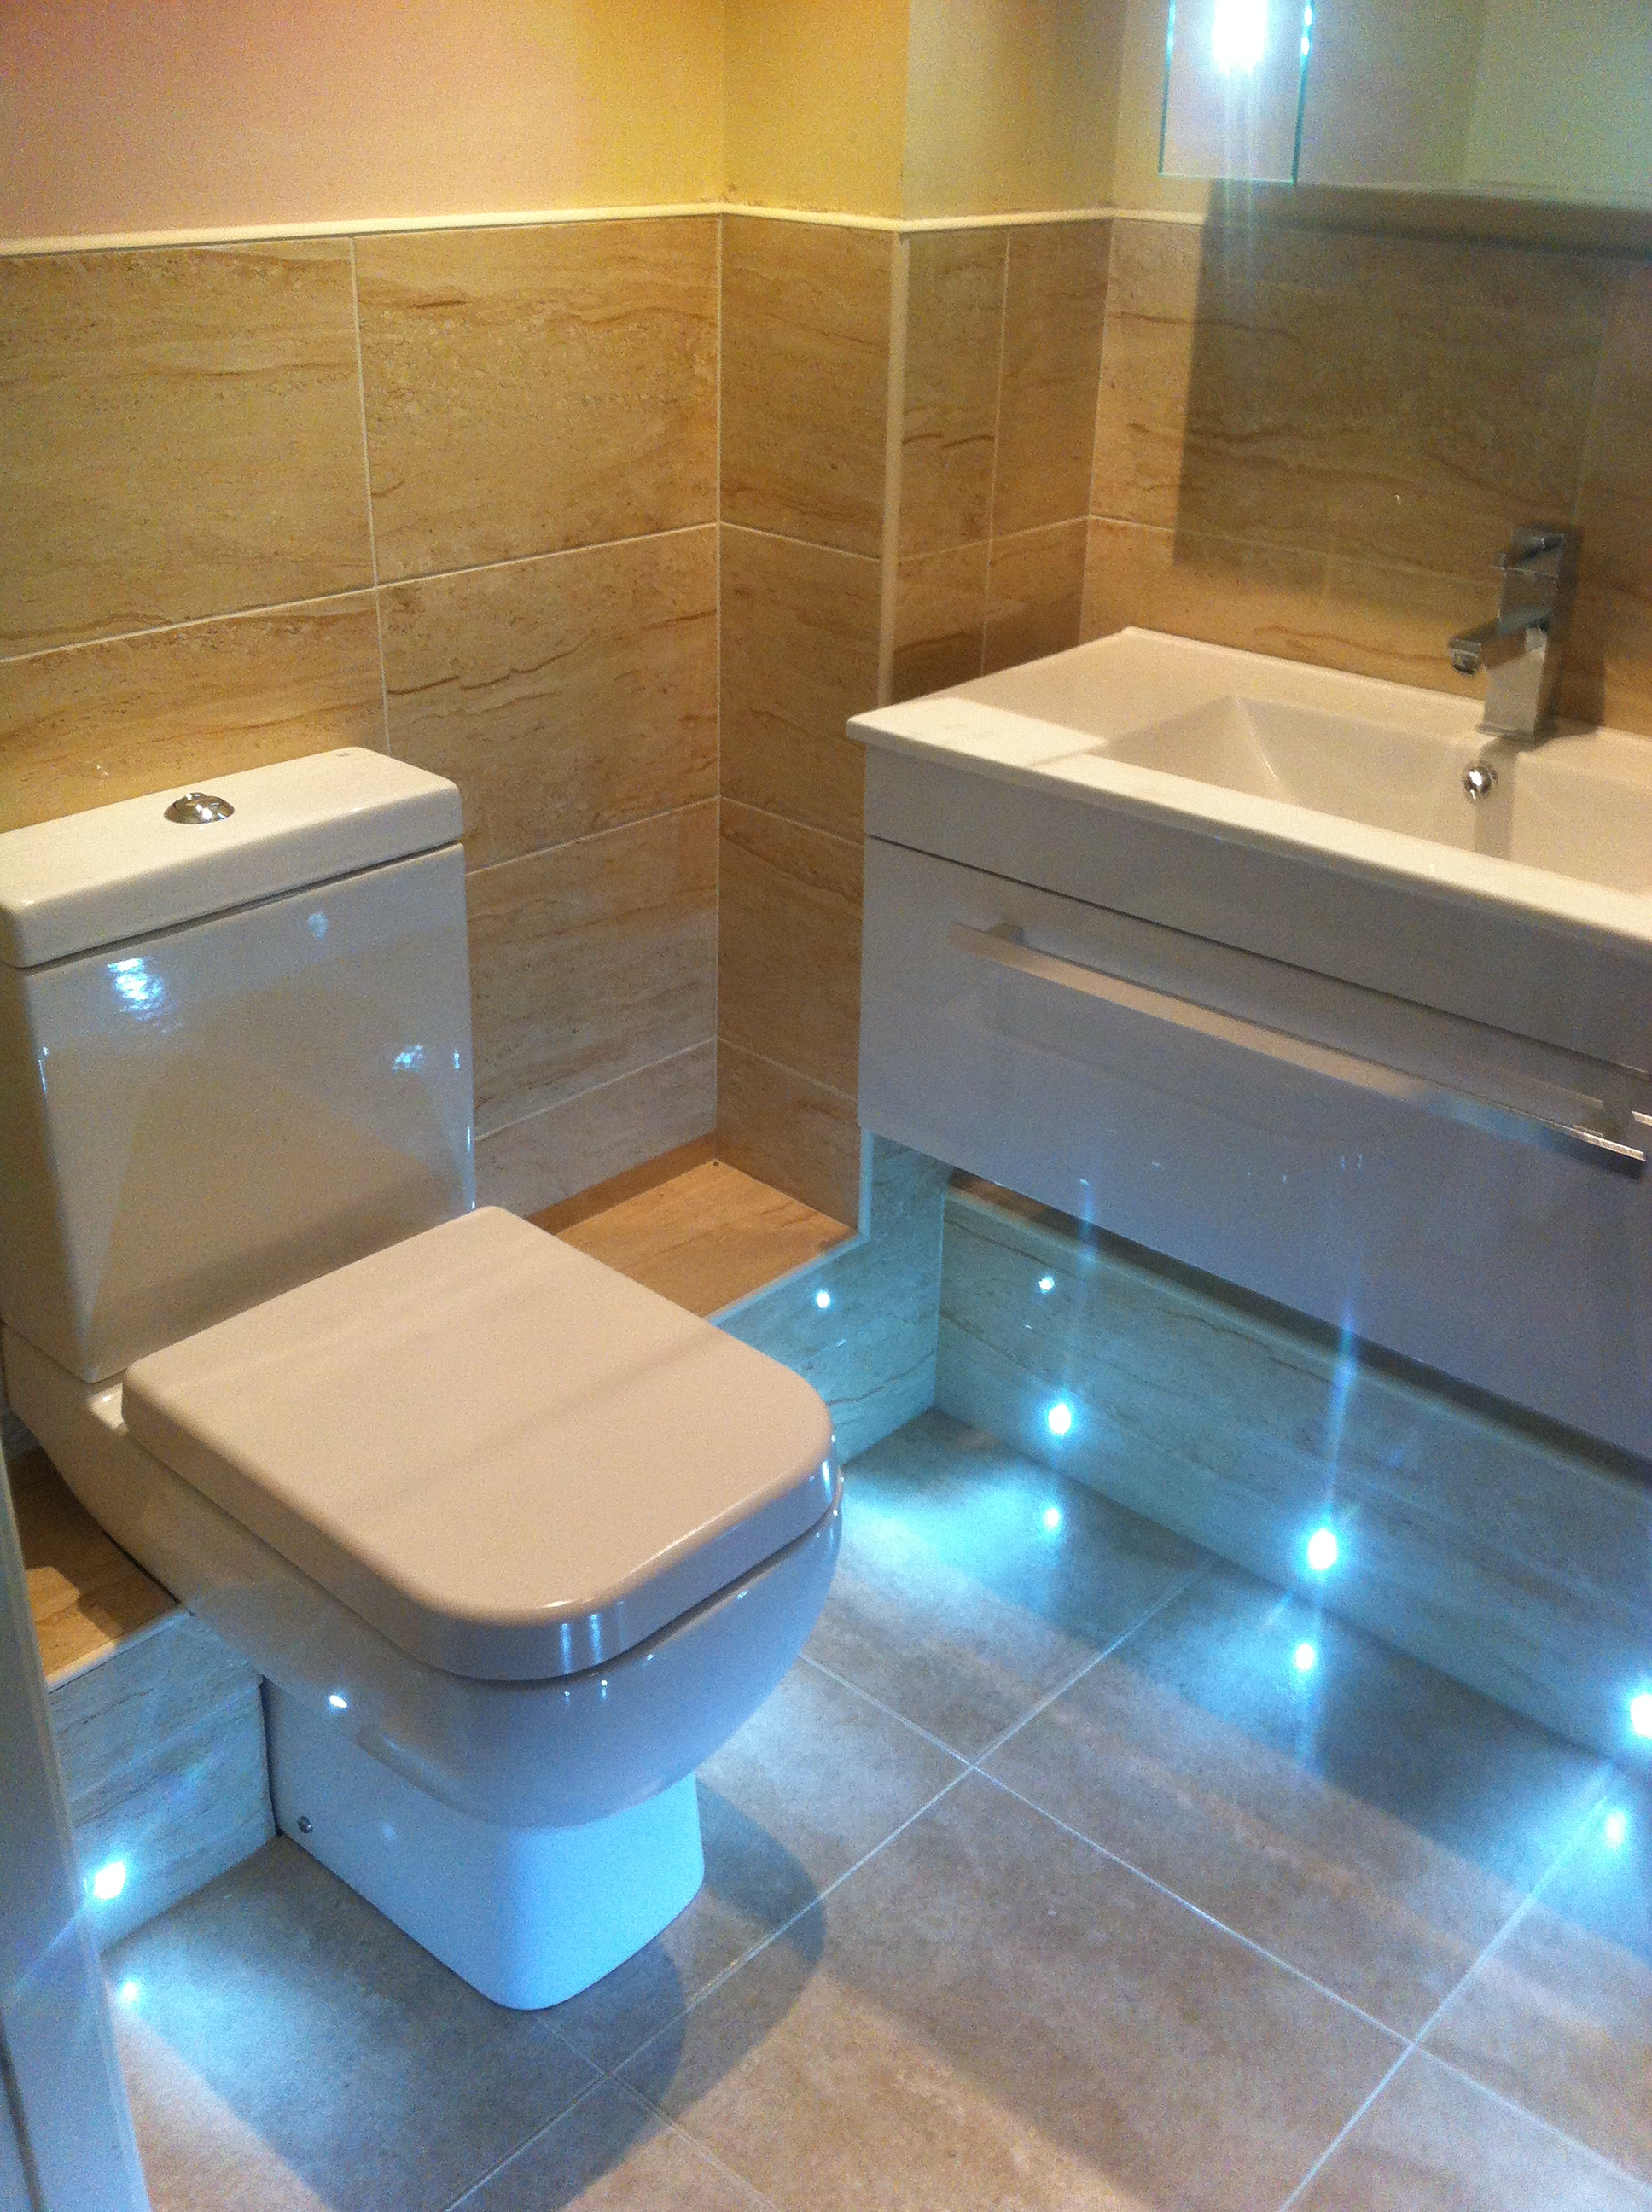 This weeks Project - New shower room with LED lighting! | Bathroom ...